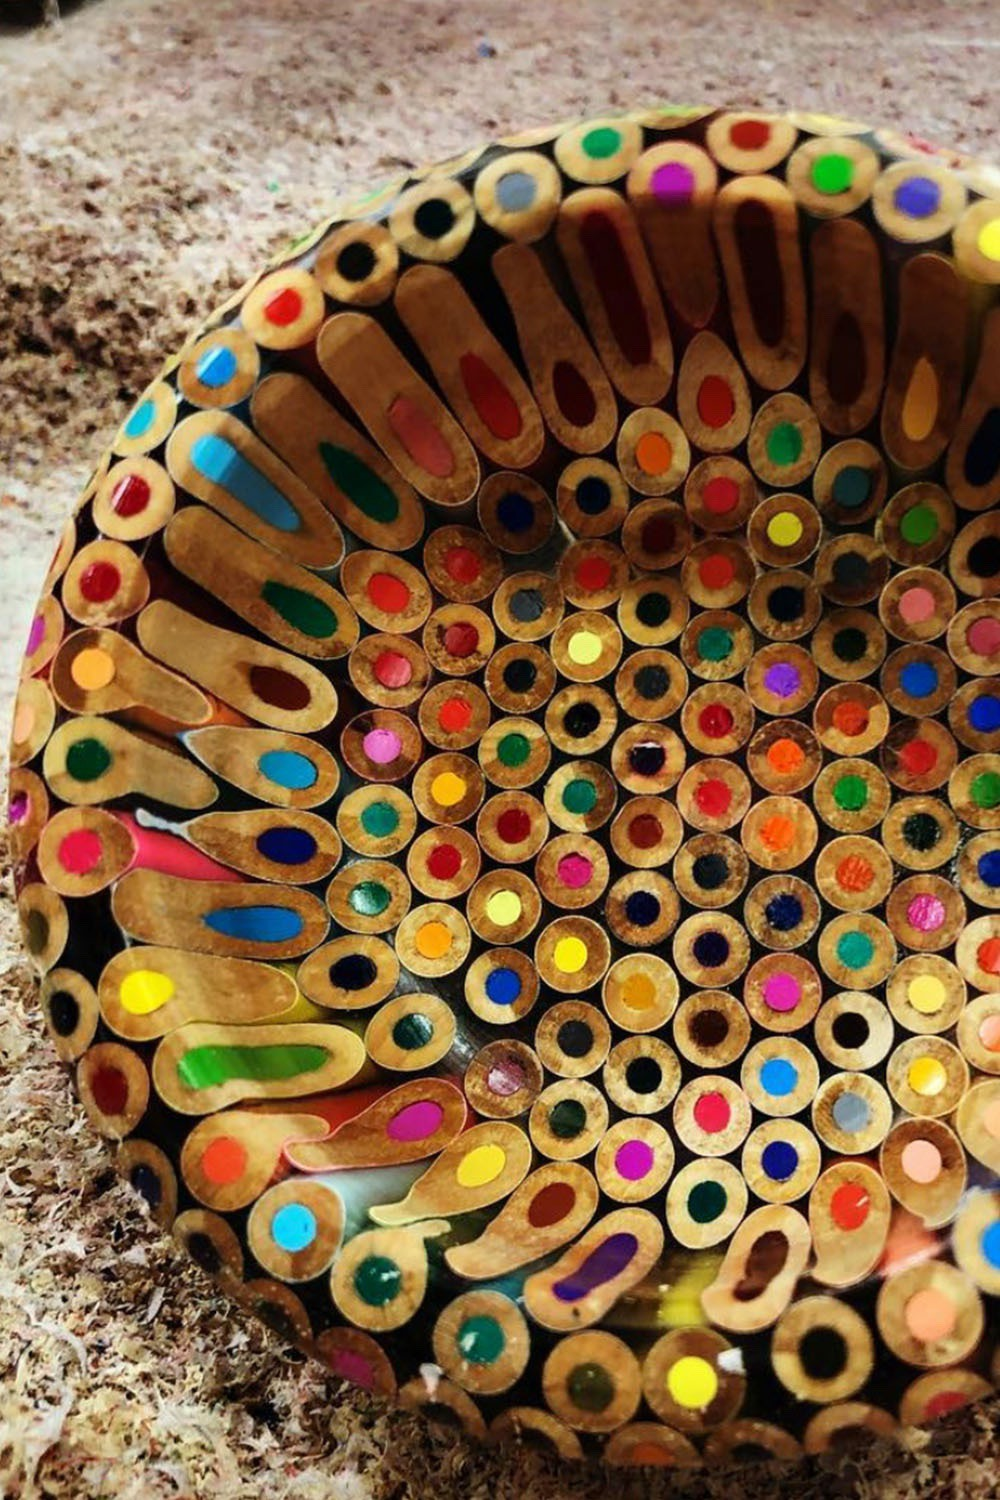 A chat with artists and woodworking Matt Myers on how he created this bowl out of colored pencils #DIY #ColoredPencils #Crafting